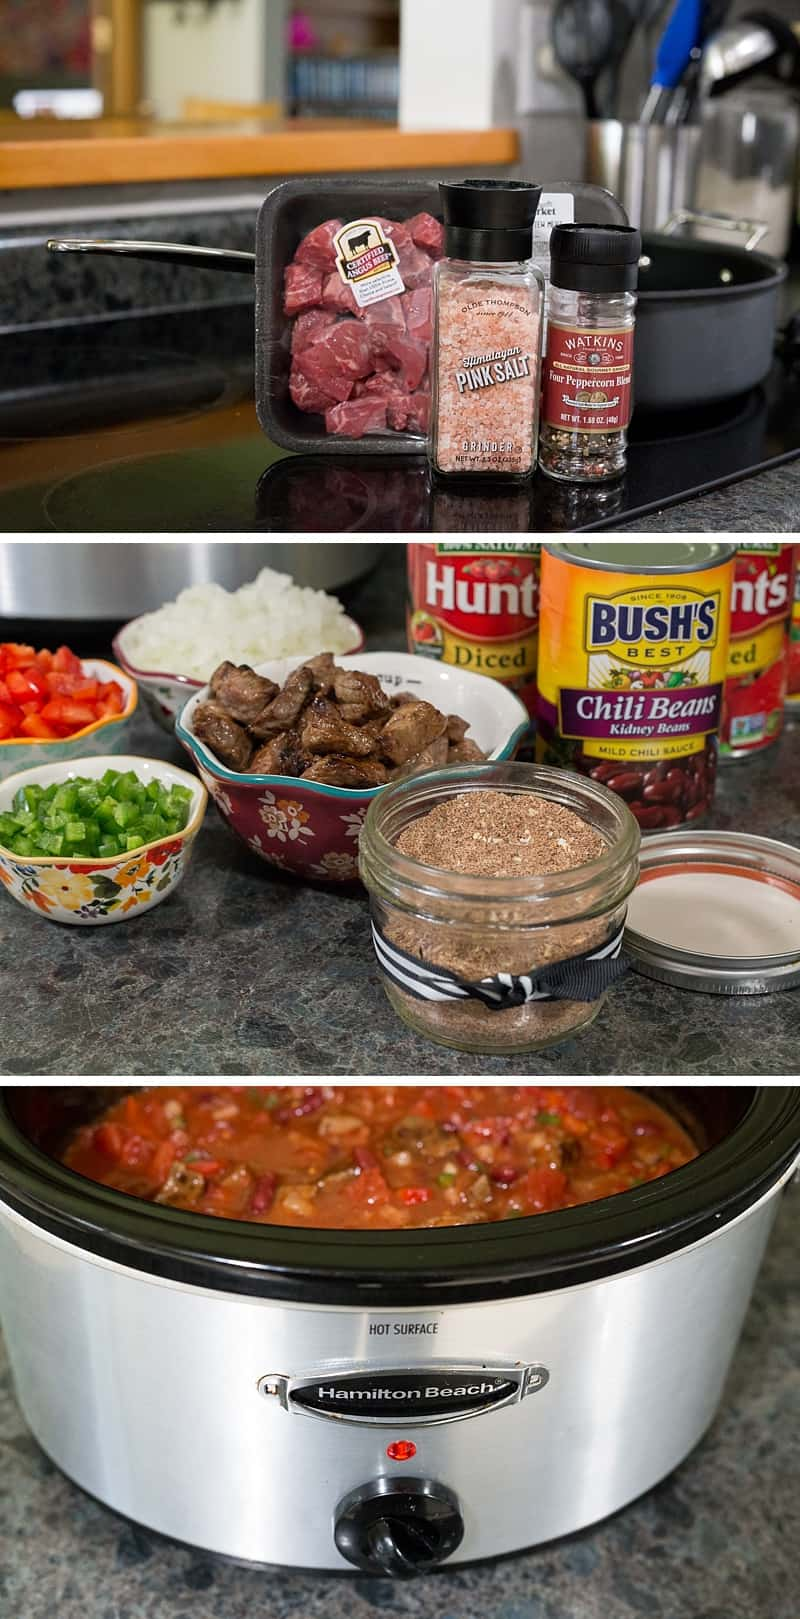 Best steak chili EVER! This slow cooker recipe is so SIMPLE to make. It is perfect for a quiet evening at home or for hosting a family party. Plus you can freeze leftovers for an easy weeknight dinner on a school night. *This is one of my go-to dinners that the whole family loves. Perfect comfort food.